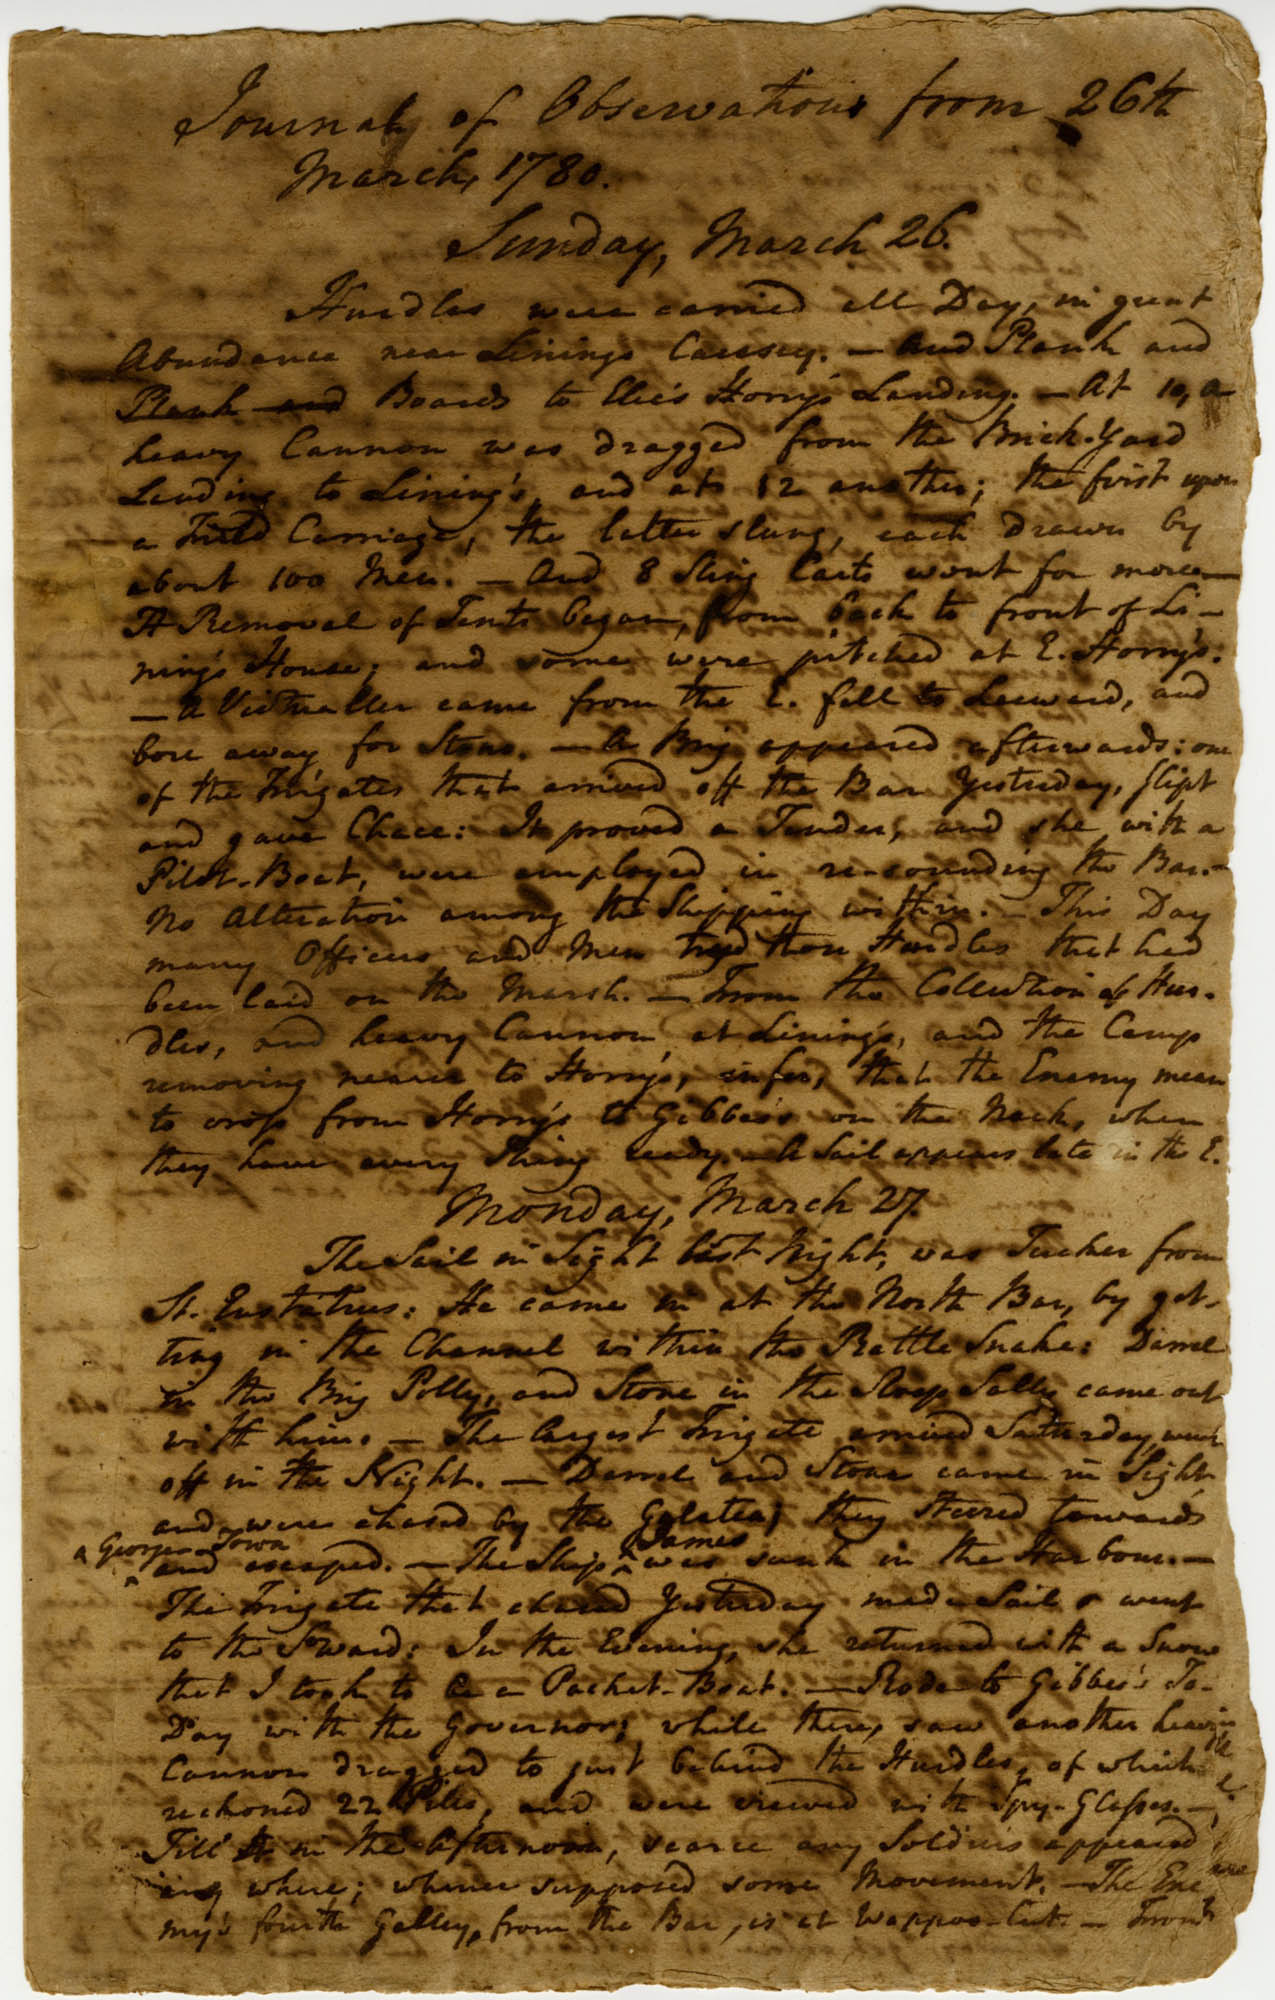 Journal of Observations, 26 March - 8 April 1780